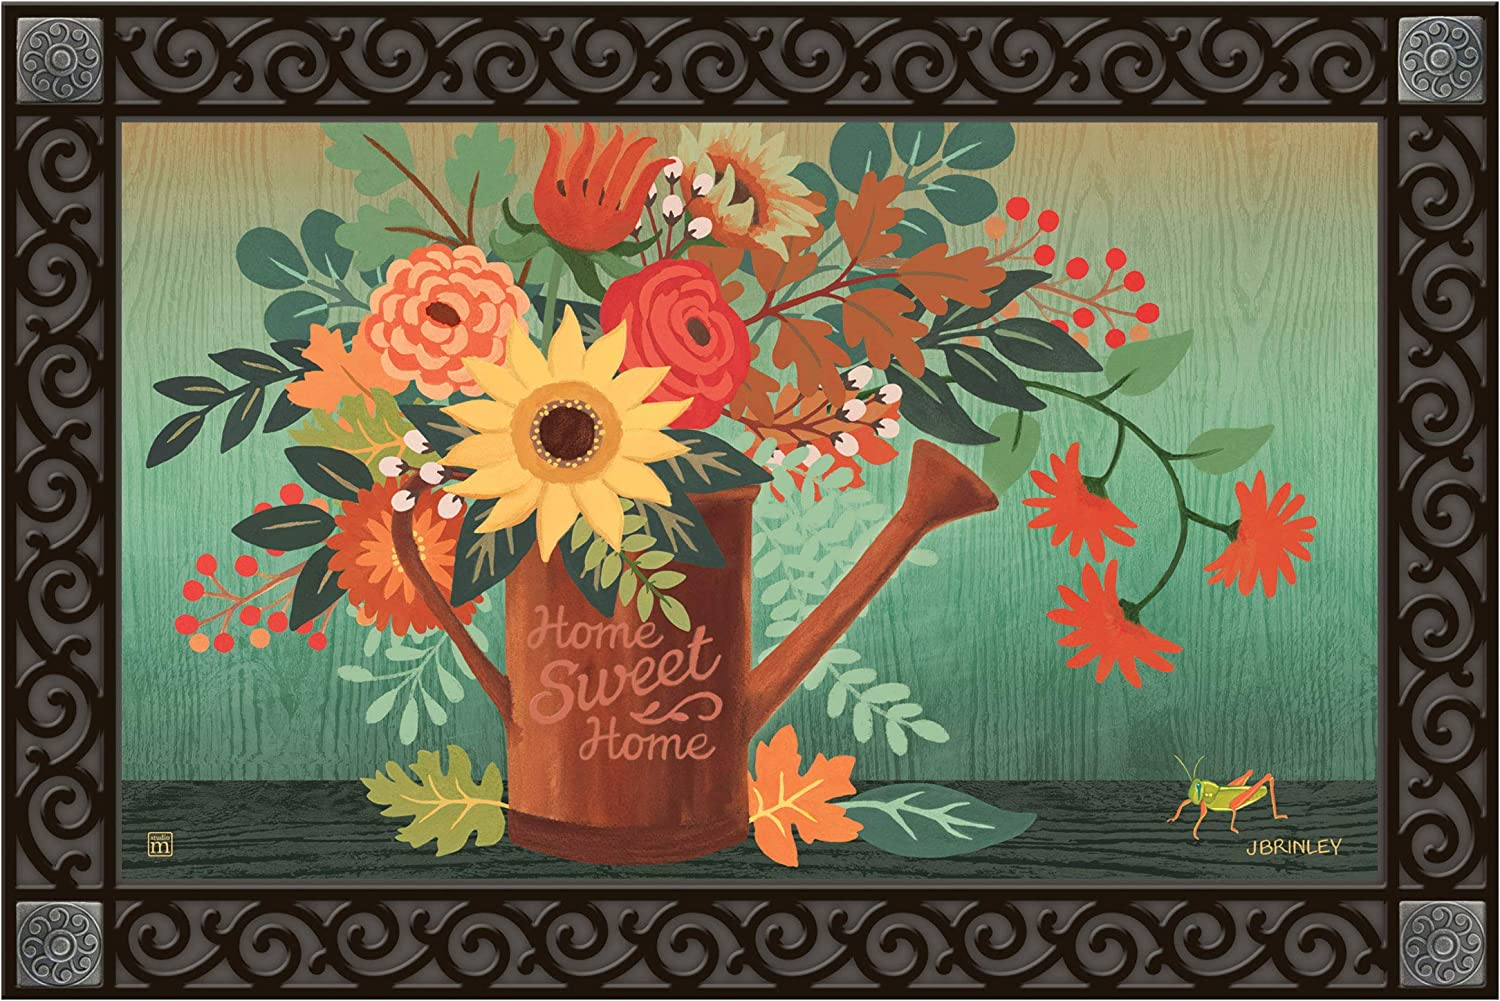 Studio M MatMates Autumn Sunrise Fall Decorative Floor Mat Indoor or Outdoor Doormat with Eco-Friendly Recycled Rubber Backing, 18 x 30 Inches